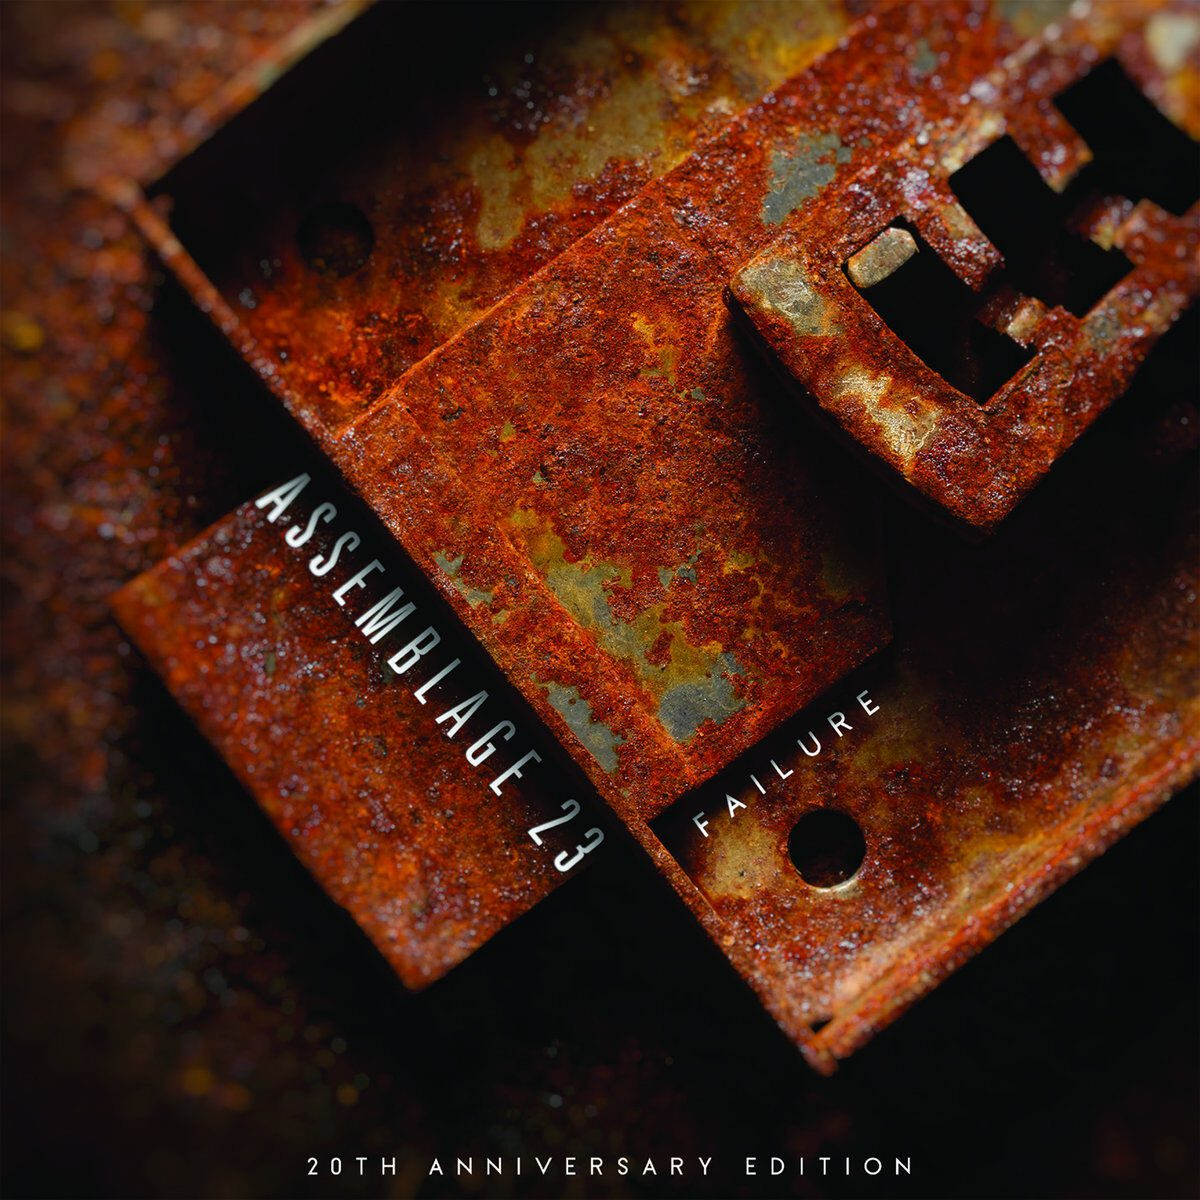 Assemblage 23 sees 'Failure' released as a 20th anniversary edition on 2LP and 2CD